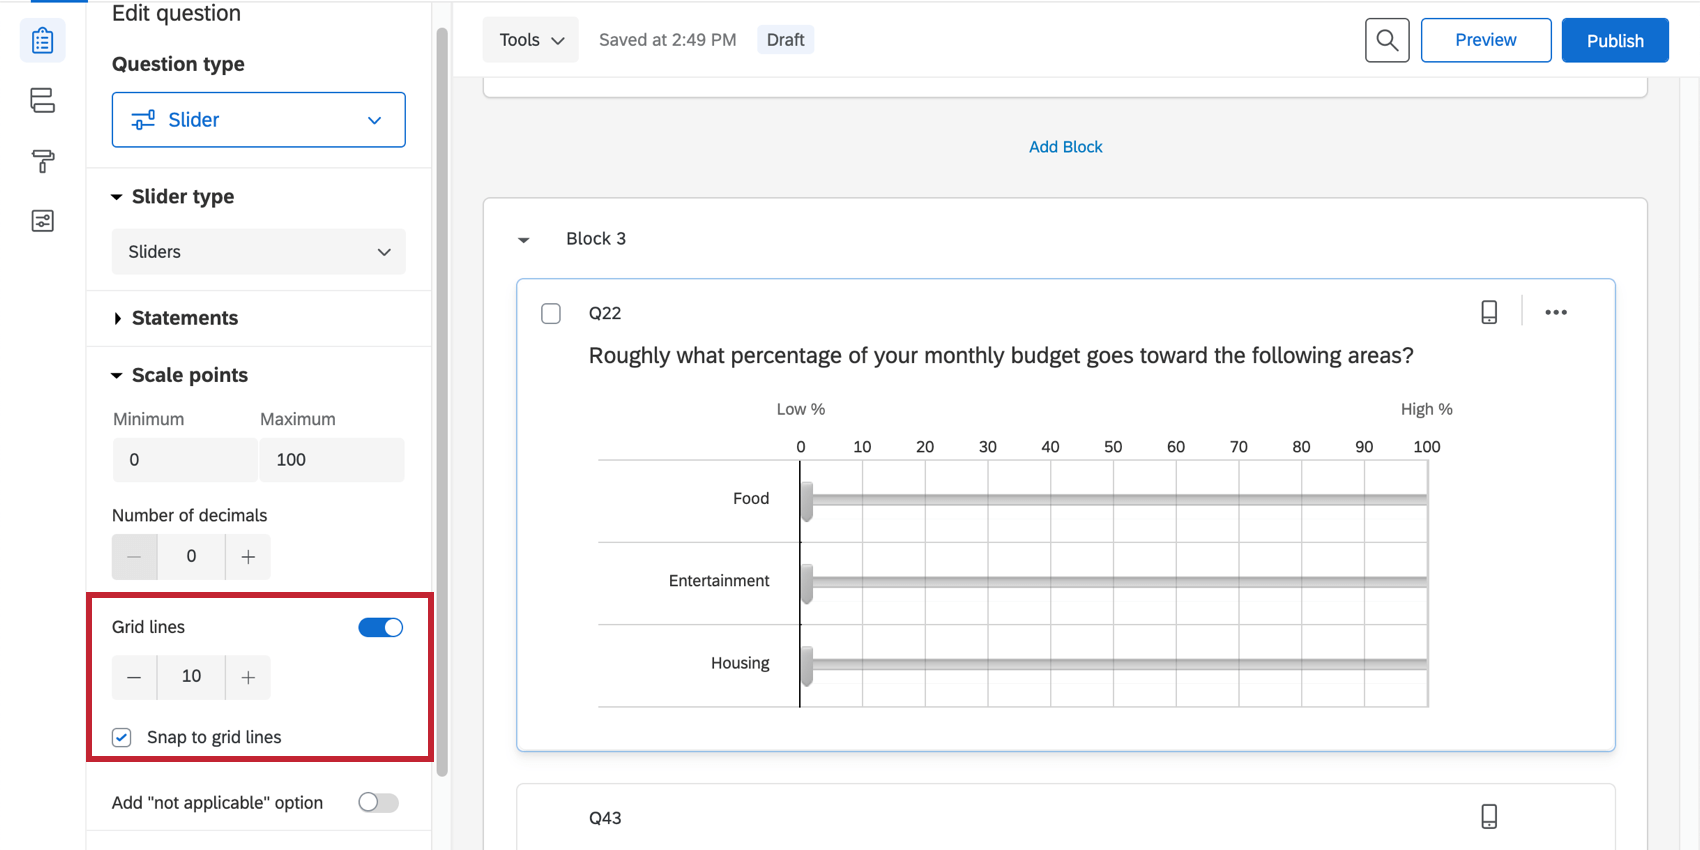 Snap to grid is selected, so sliders can never got between grid lines